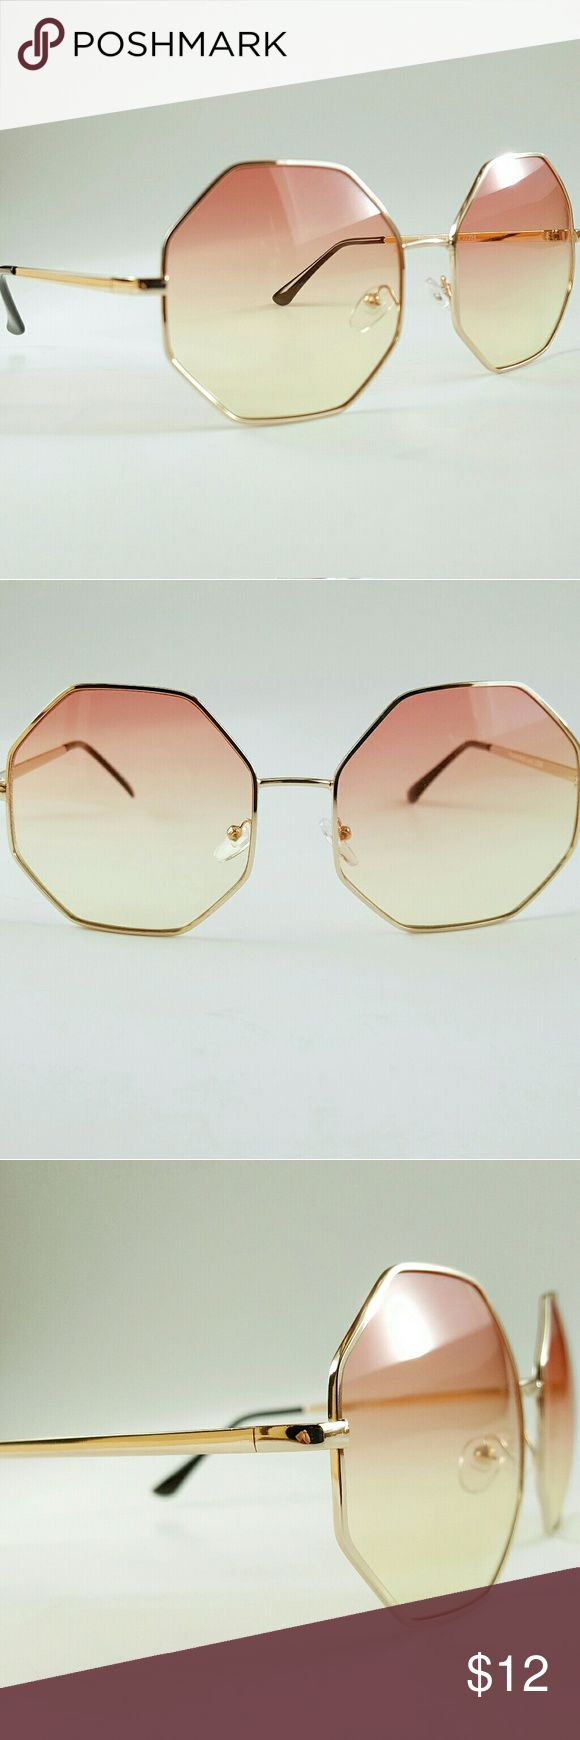 NEW! Hippie Chic Ombre Sunglasses Hippie chic,  gold frame hexagon shaped sunglasses. Orange to yellow ombre lenses. Gold arms with black ear piece. UVA400 protection against ultra violet UVA & UVB rays. New, only worn once for this photo. Accessories Sunglasses